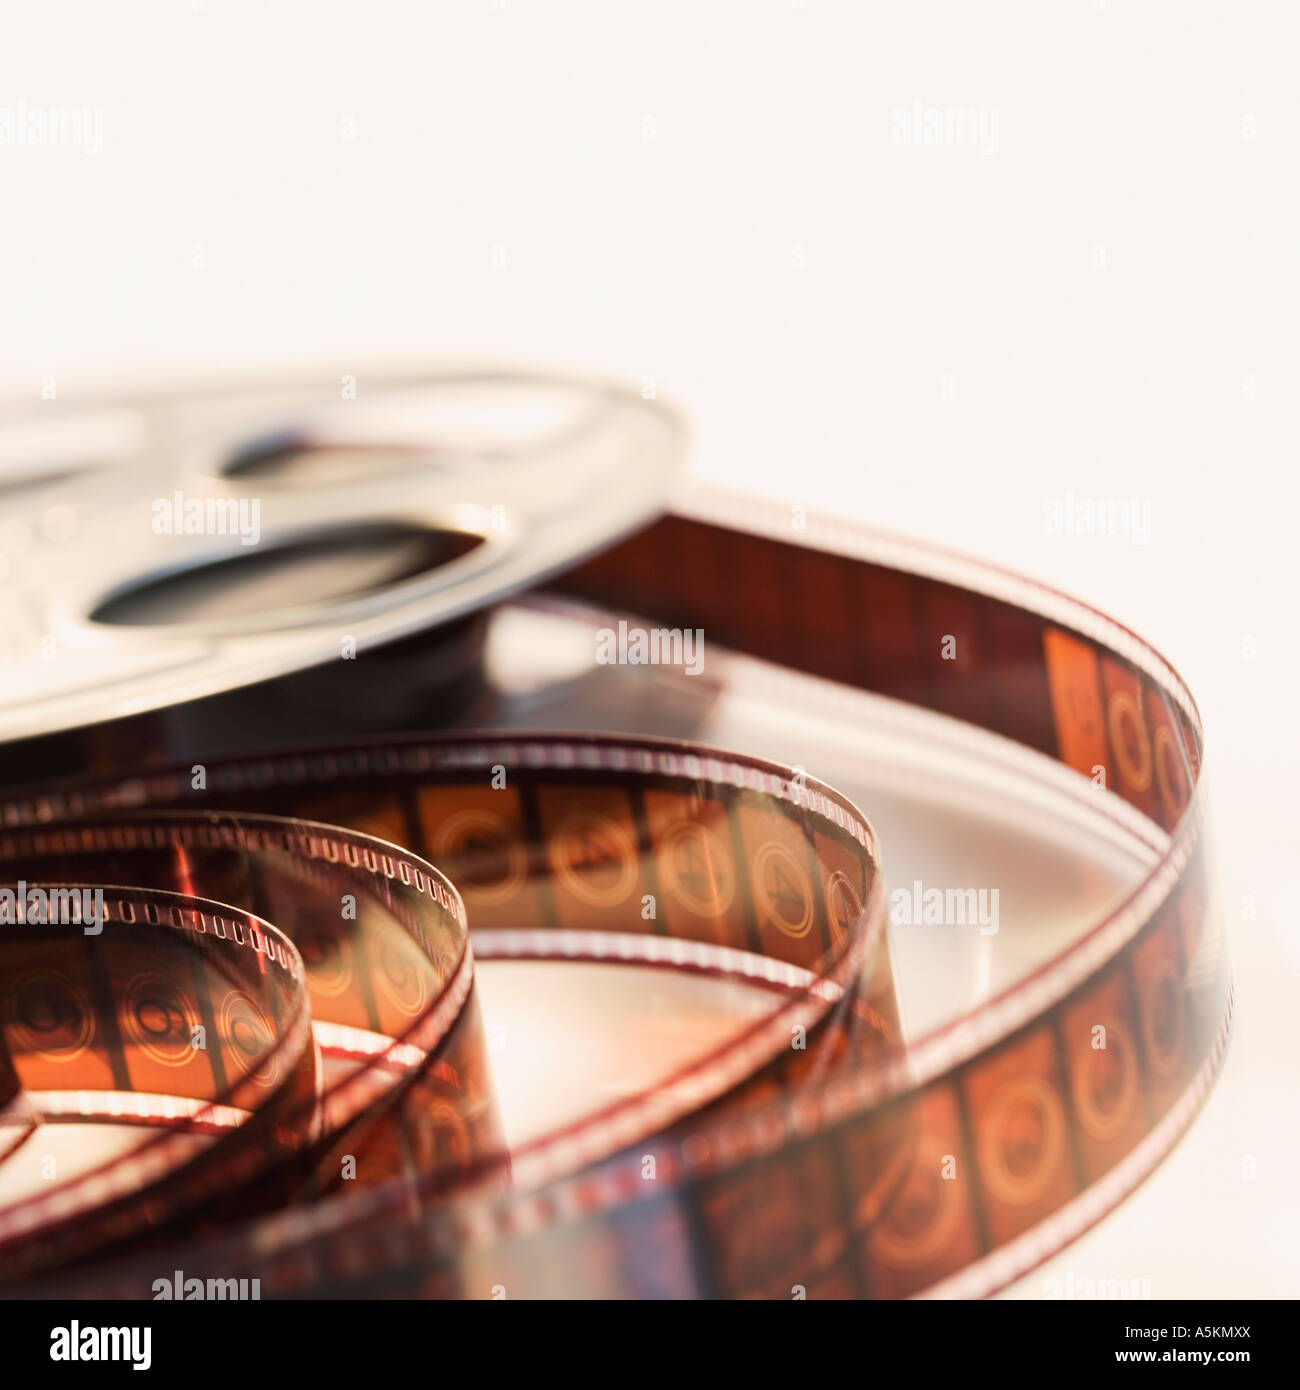 Close up of reel of movie film - Stock Image